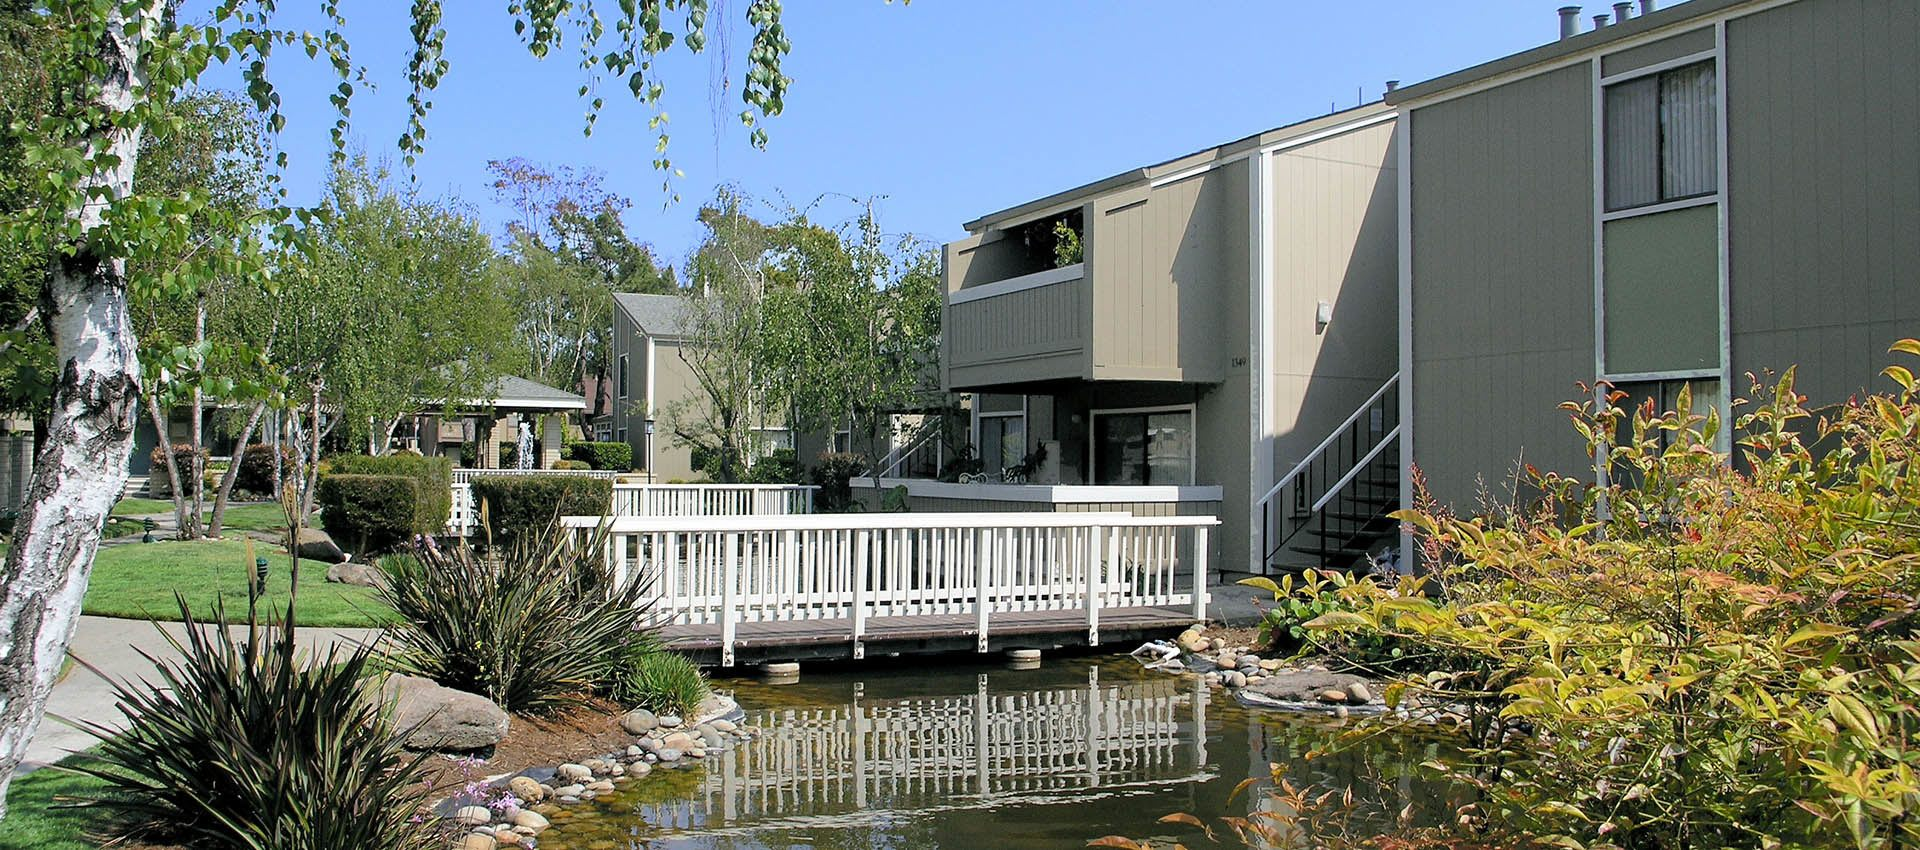 Bridge at Ballena Village Apartment Homes in Alameda, CA